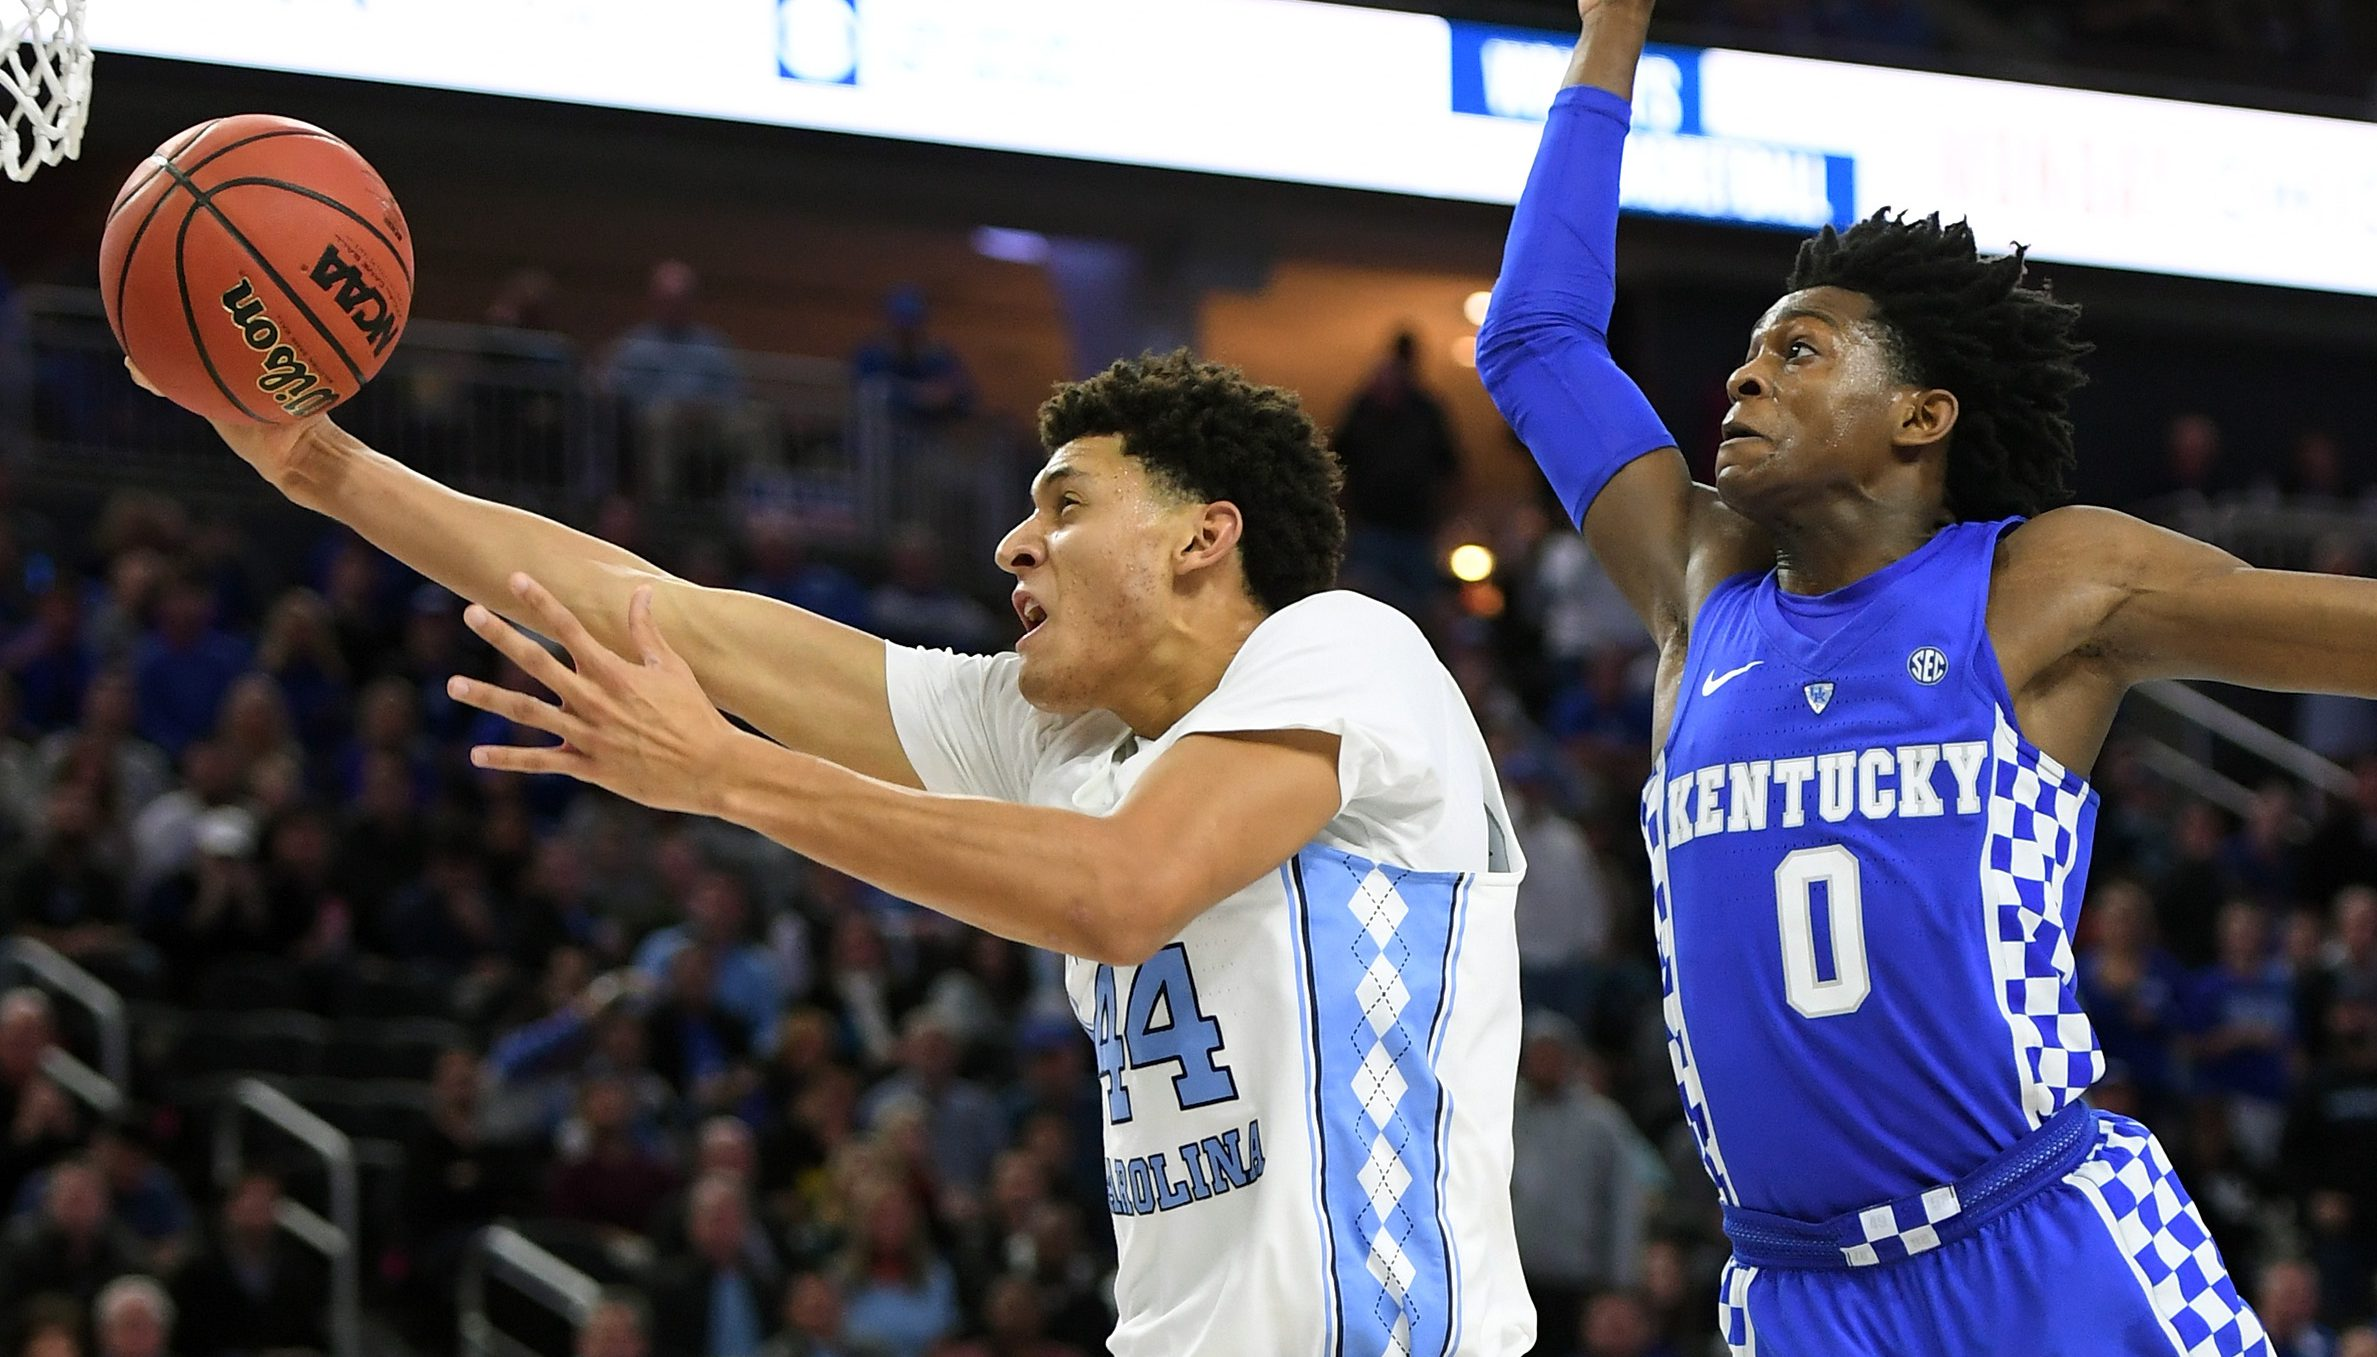 LAS VEGAS, NV - DECEMBER 17: Justin Jackson #44 of the North Carolina Tar Heels drives to the basket against De'Aaron Fox #0 of the Kentucky Wildcats during the CBS Sports Classic at T-Mobile Arena on December 17, 2016 in Las Vegas, Nevada. Kentucky won 103-100. (Photo by Ethan Miller/Getty Images)